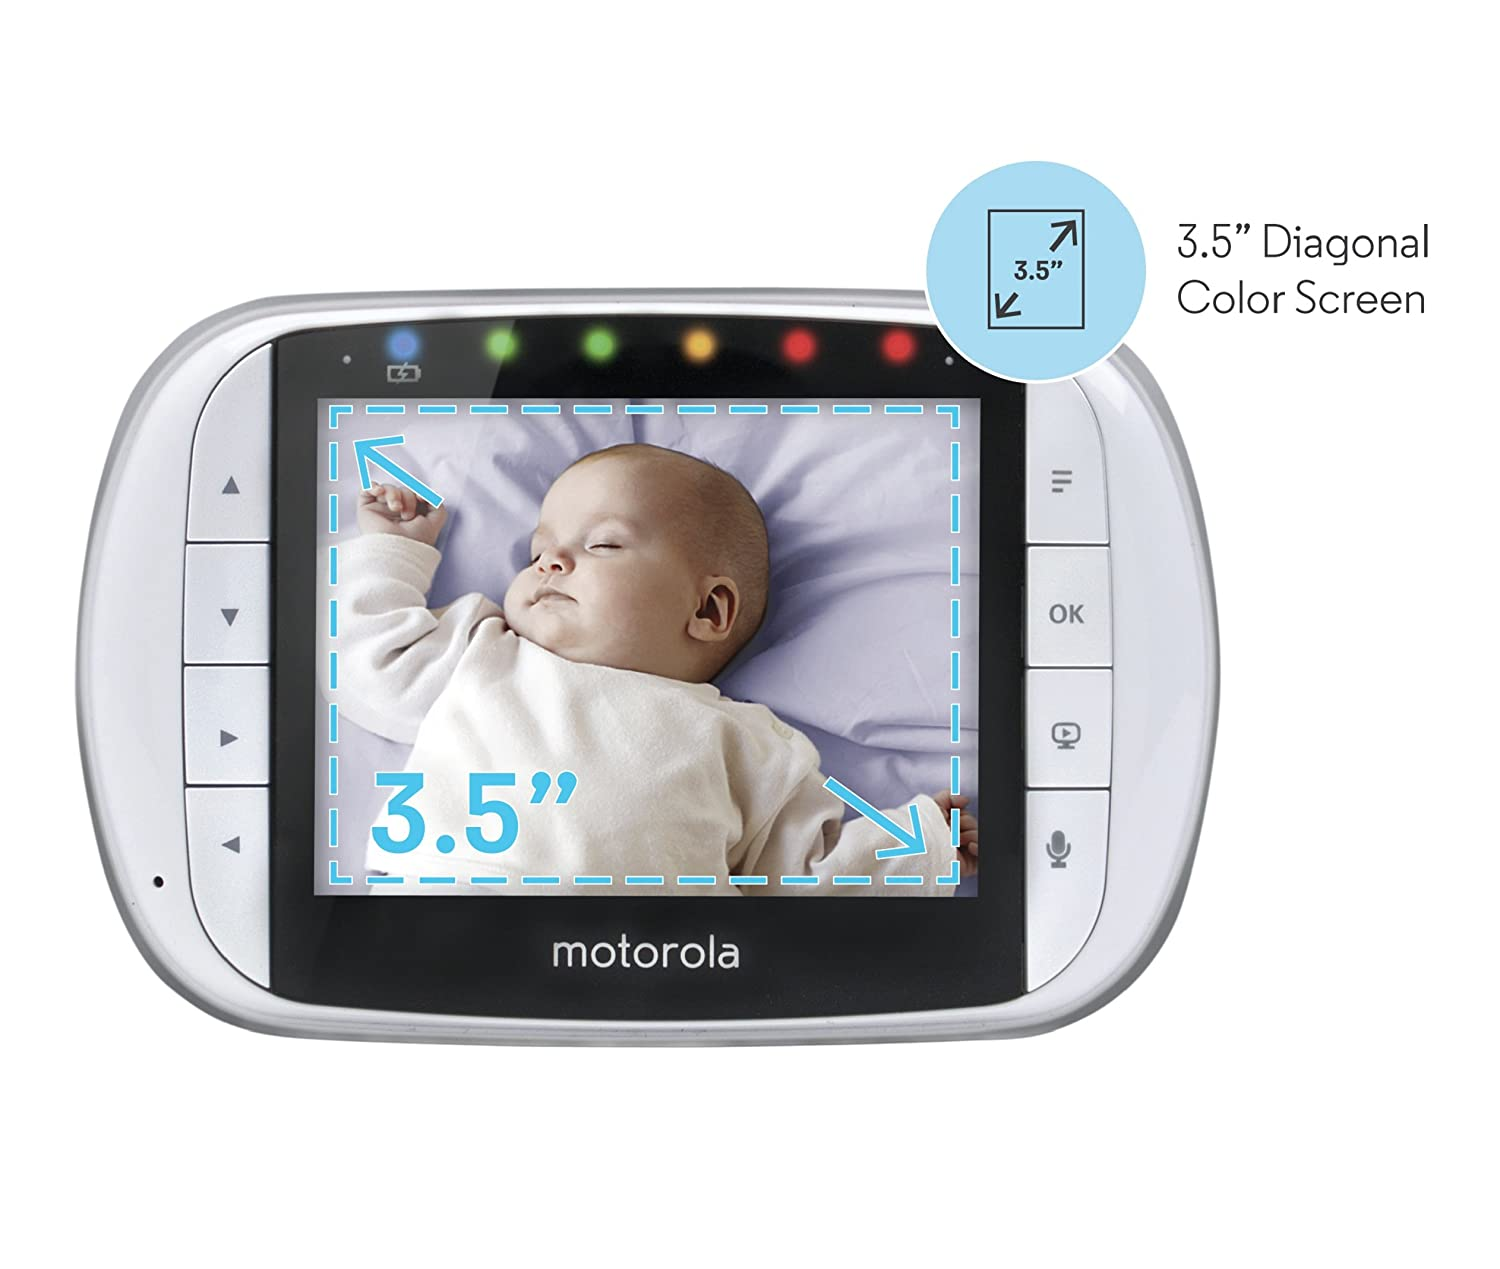 Remote Camera Pan Tilt and Zoom Motorola MBP36S Remote Wireless Video Baby Monitor with 3.5-Inch Color LCD Screen